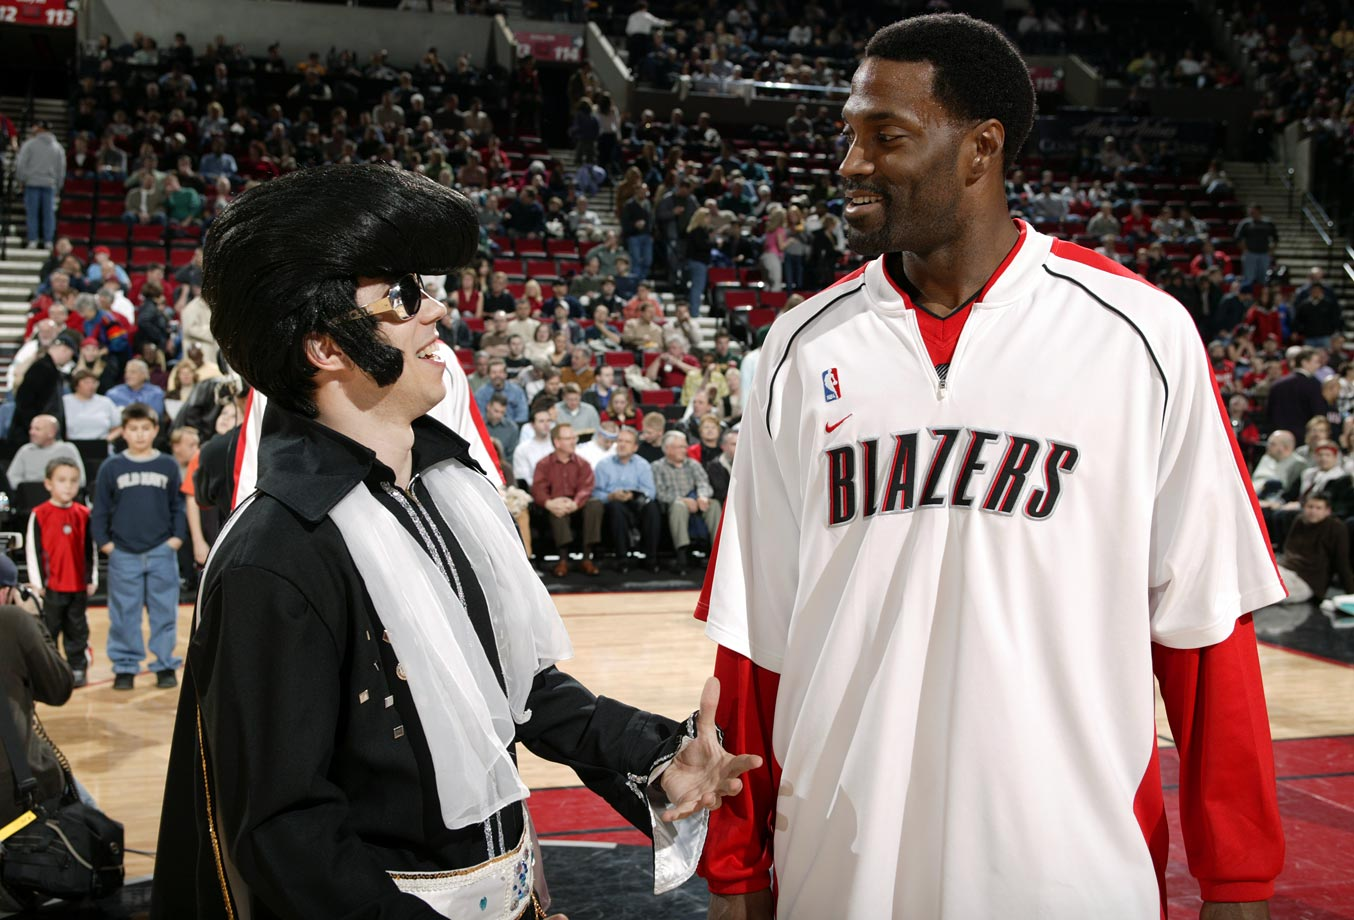 Dale Davis talks with an Elvis Presley impersonator prior to the Portland Trail Blazers game against the Memphis Grizzlies at Rose Garden in Portland on March 3, 2004.